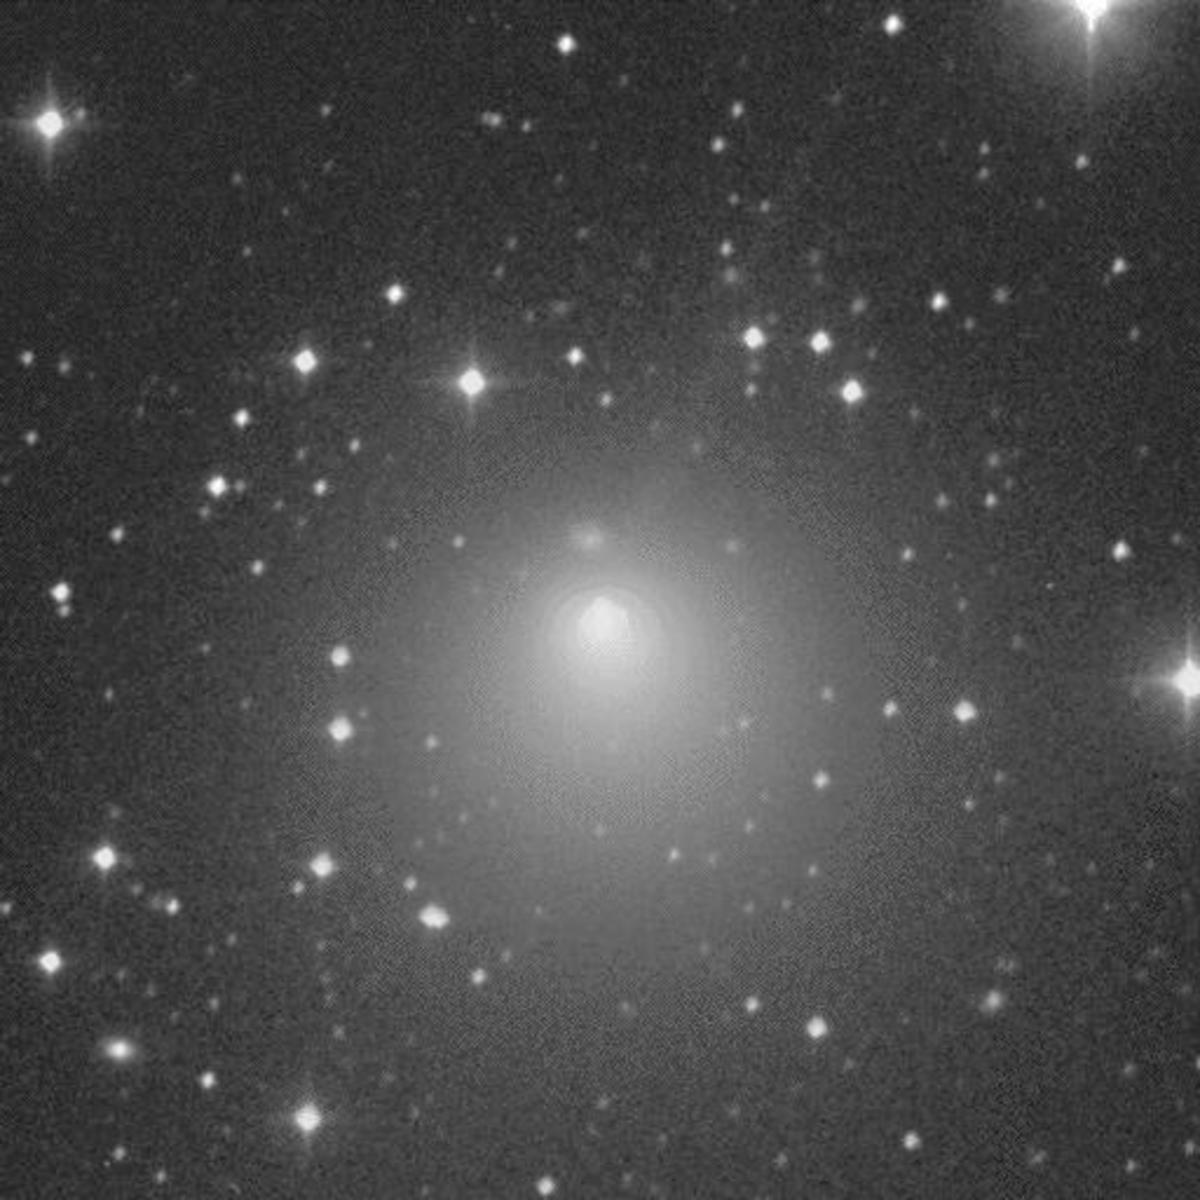 Encke's Comet is the comet most frequently seen from Earth